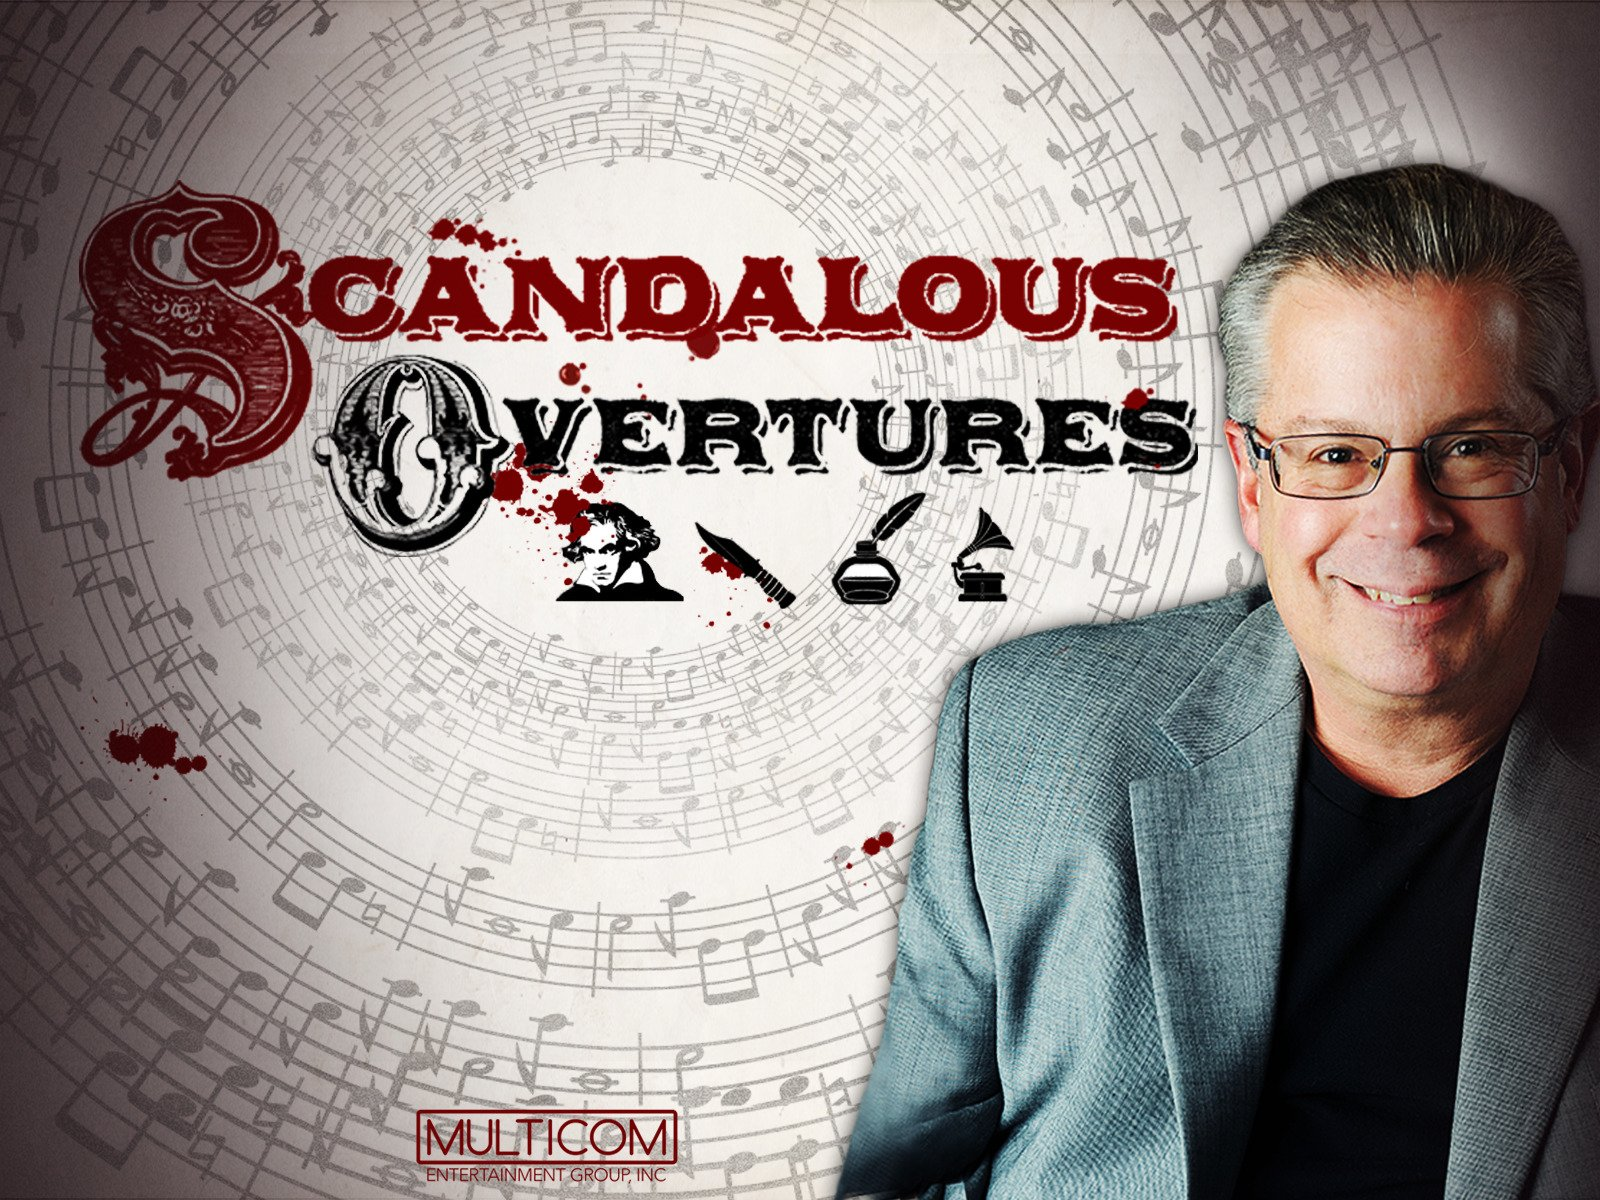 Scandalous Overtures - Season 1